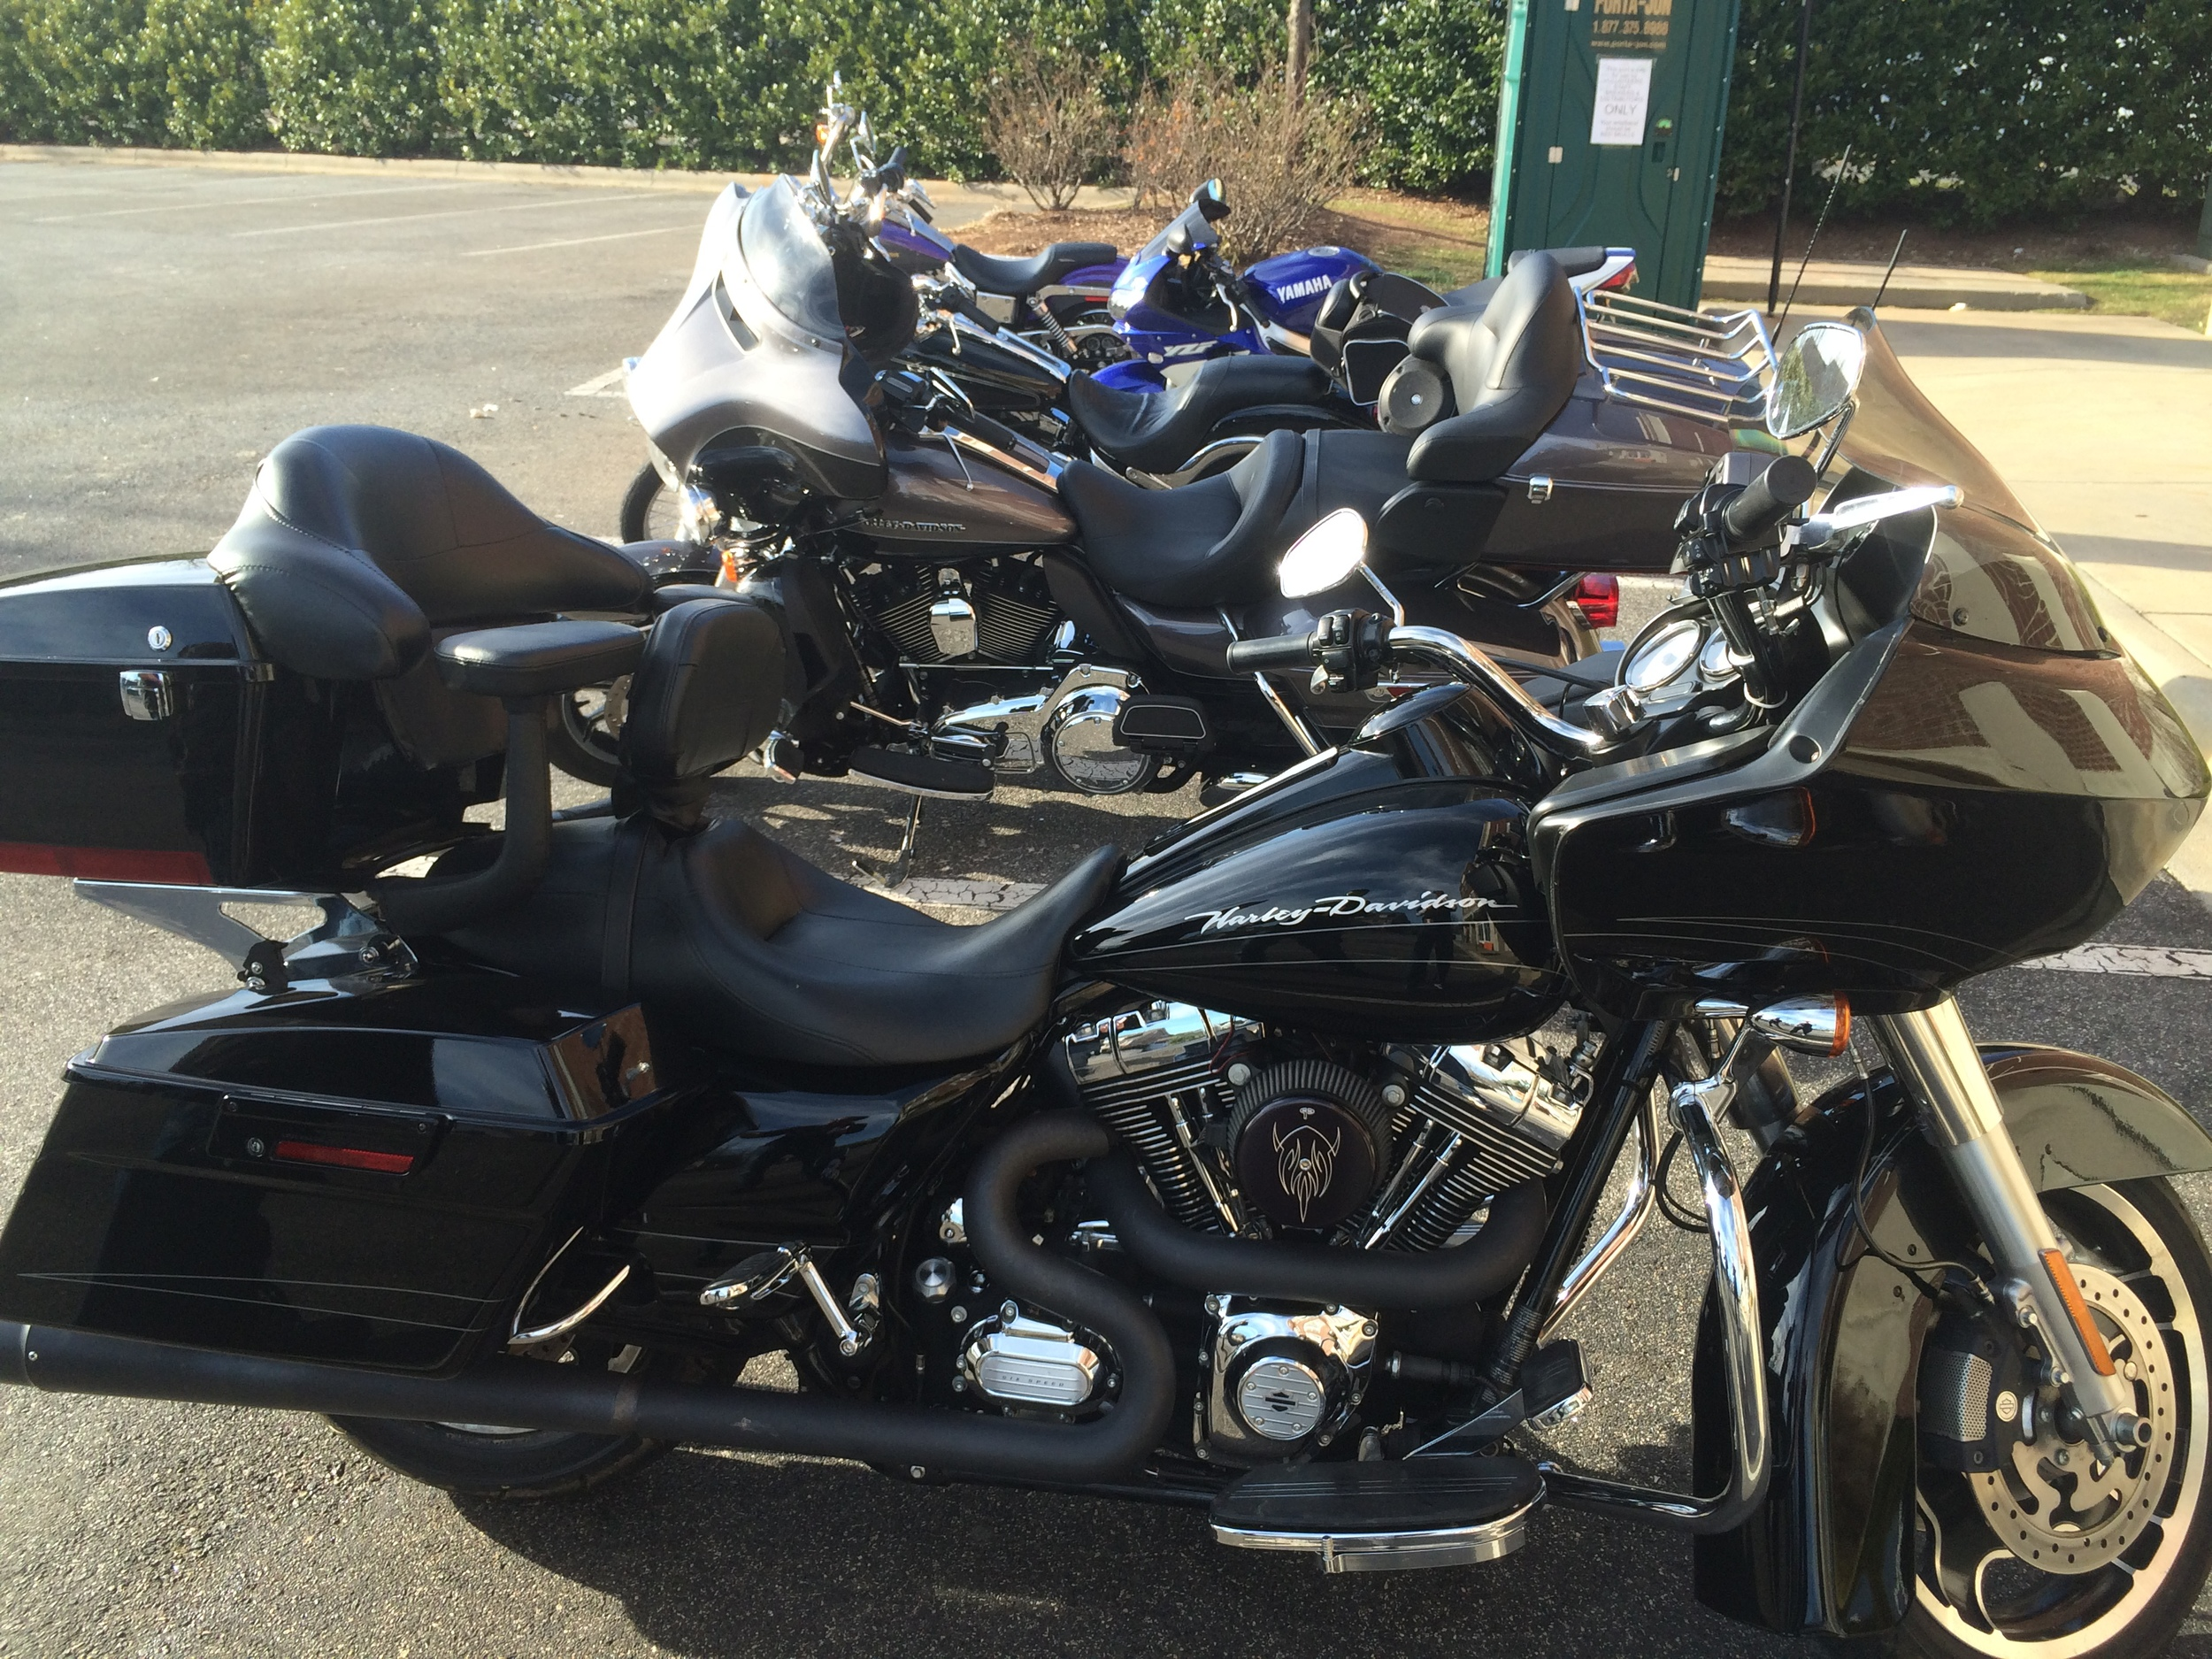 Danny Luna's  amazing sounding 2012 Harley Davidson Road Glide and all of the bikes from our ride on 3/8/2015 behind it